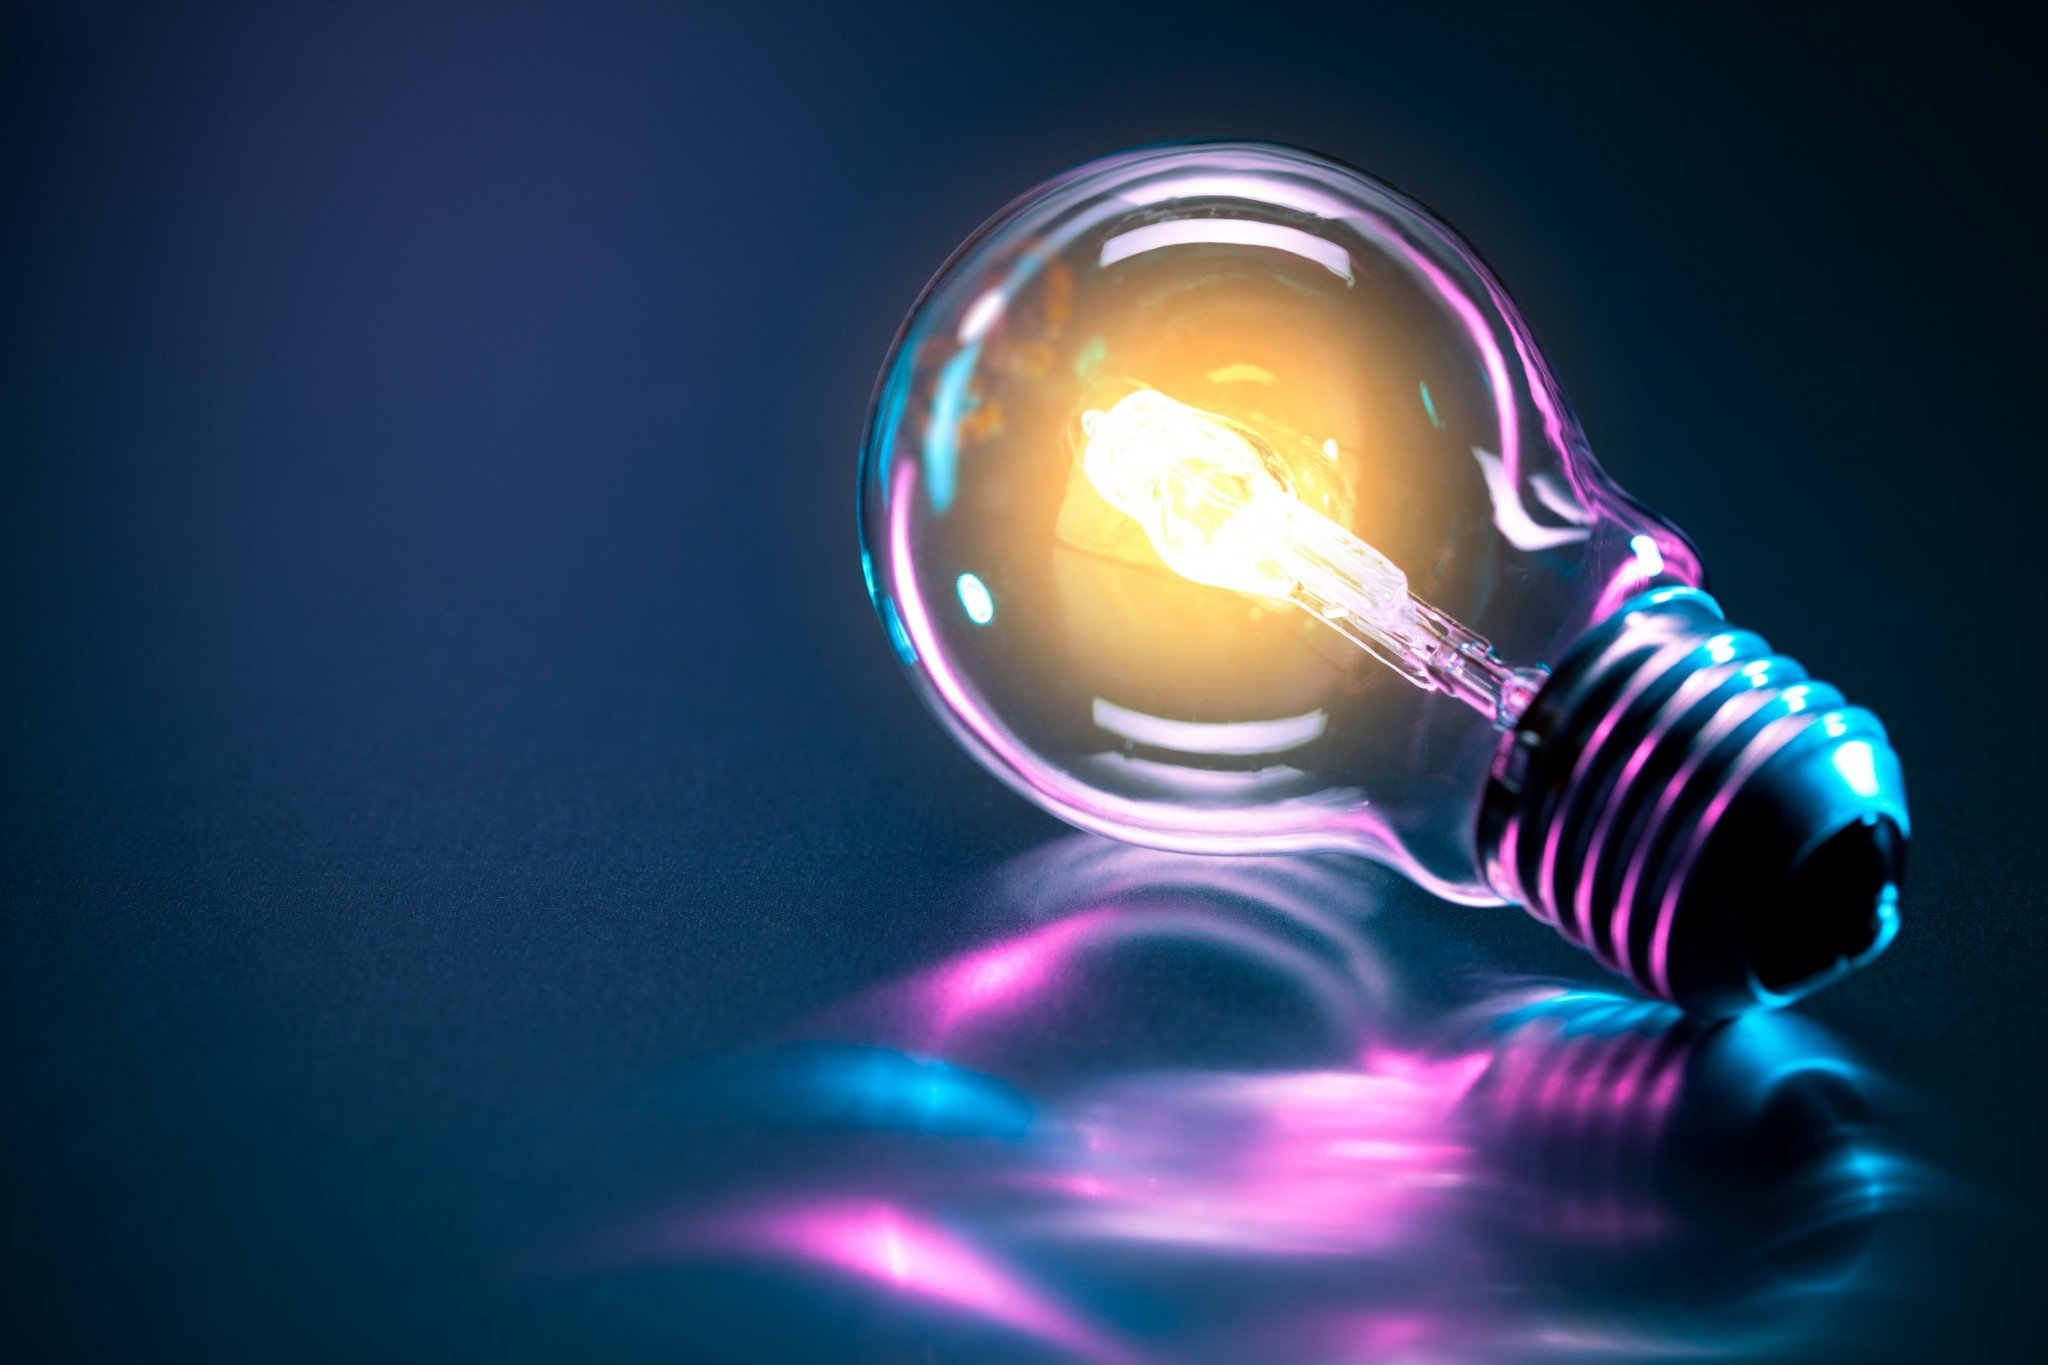 1543387696_bulb-neon-reflection-electric-emitte-rendering-backgound